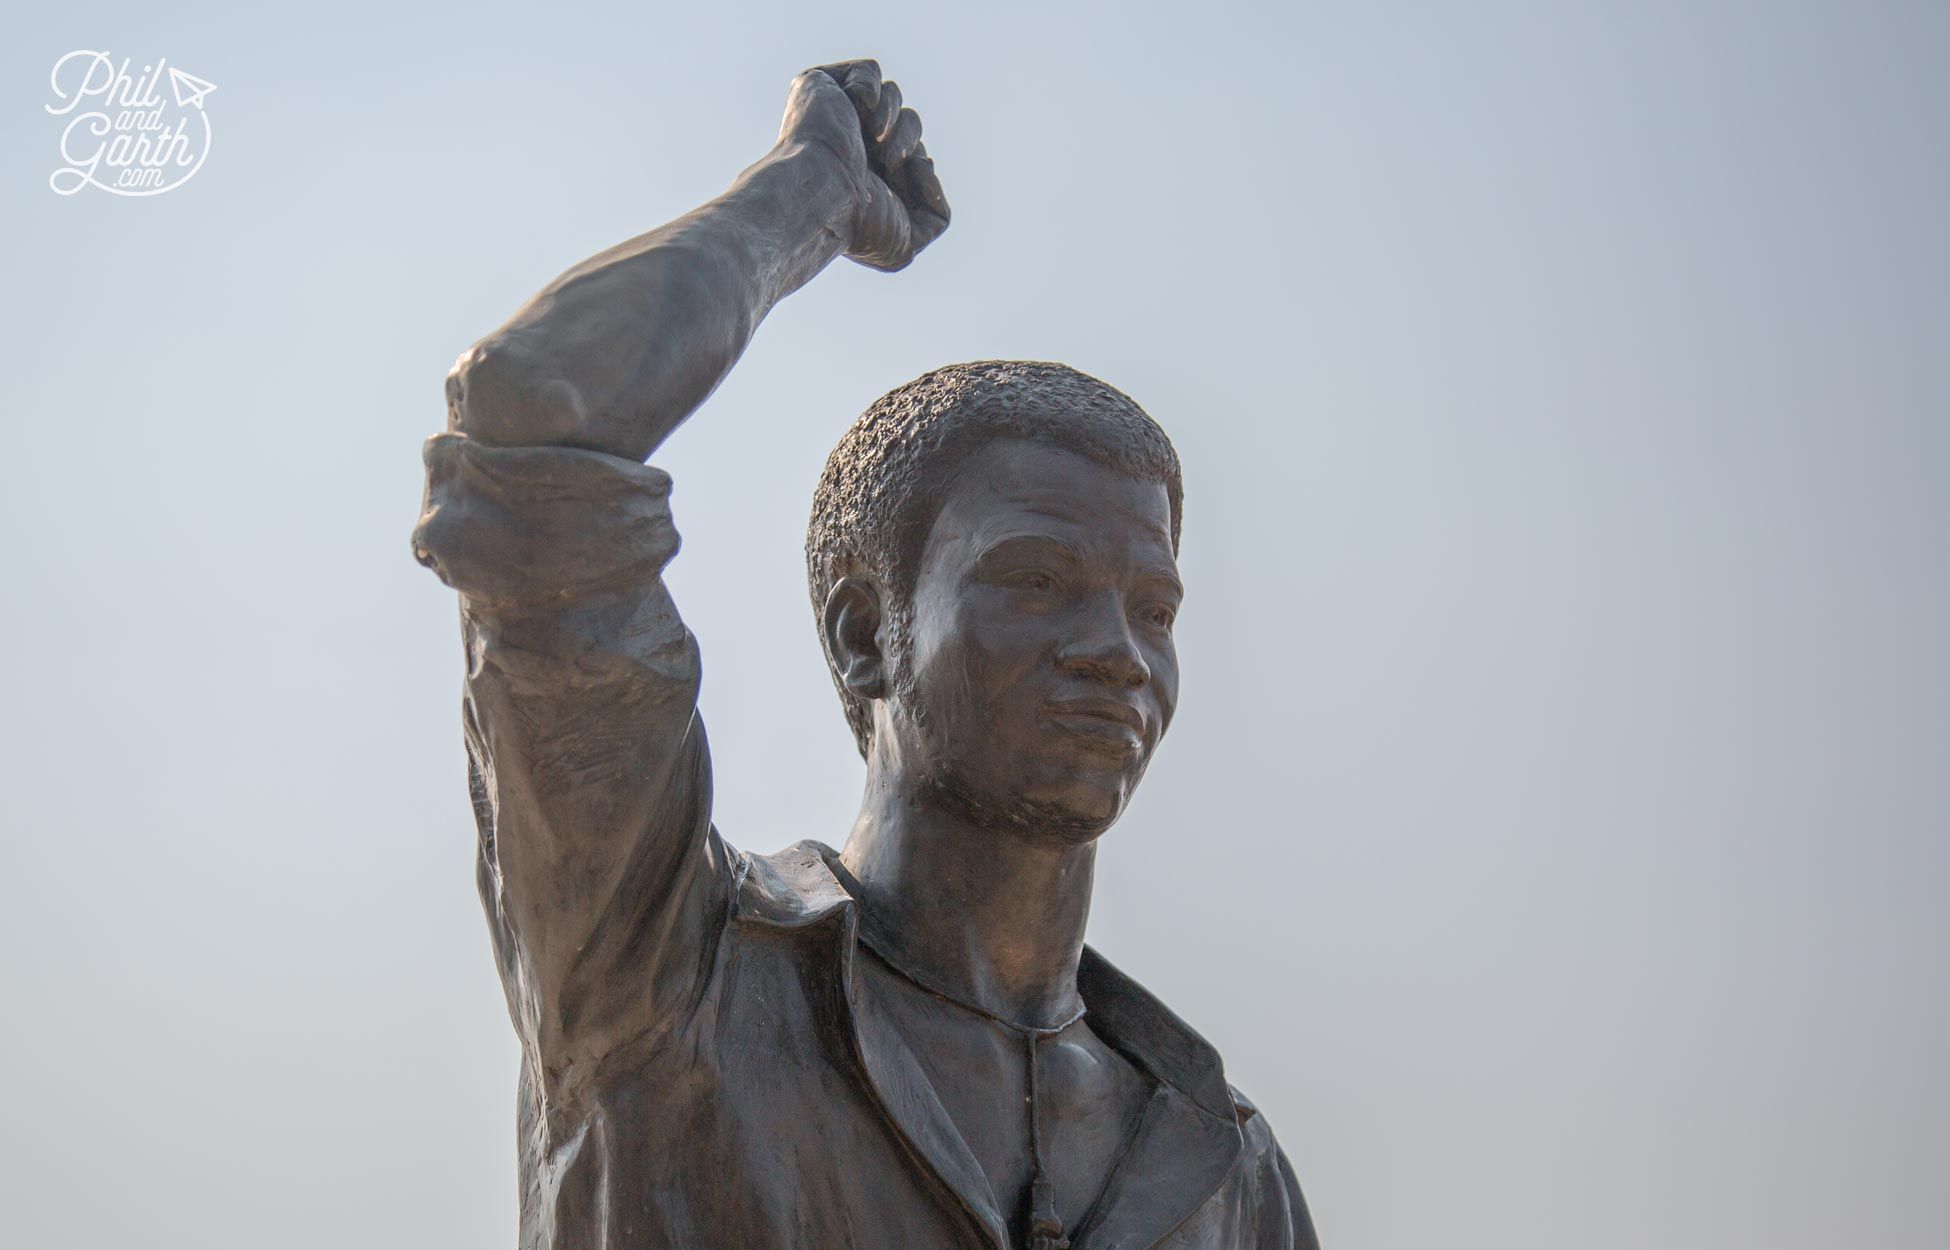 Statue of Tsietsi Mashinini who led the peaceful student protest